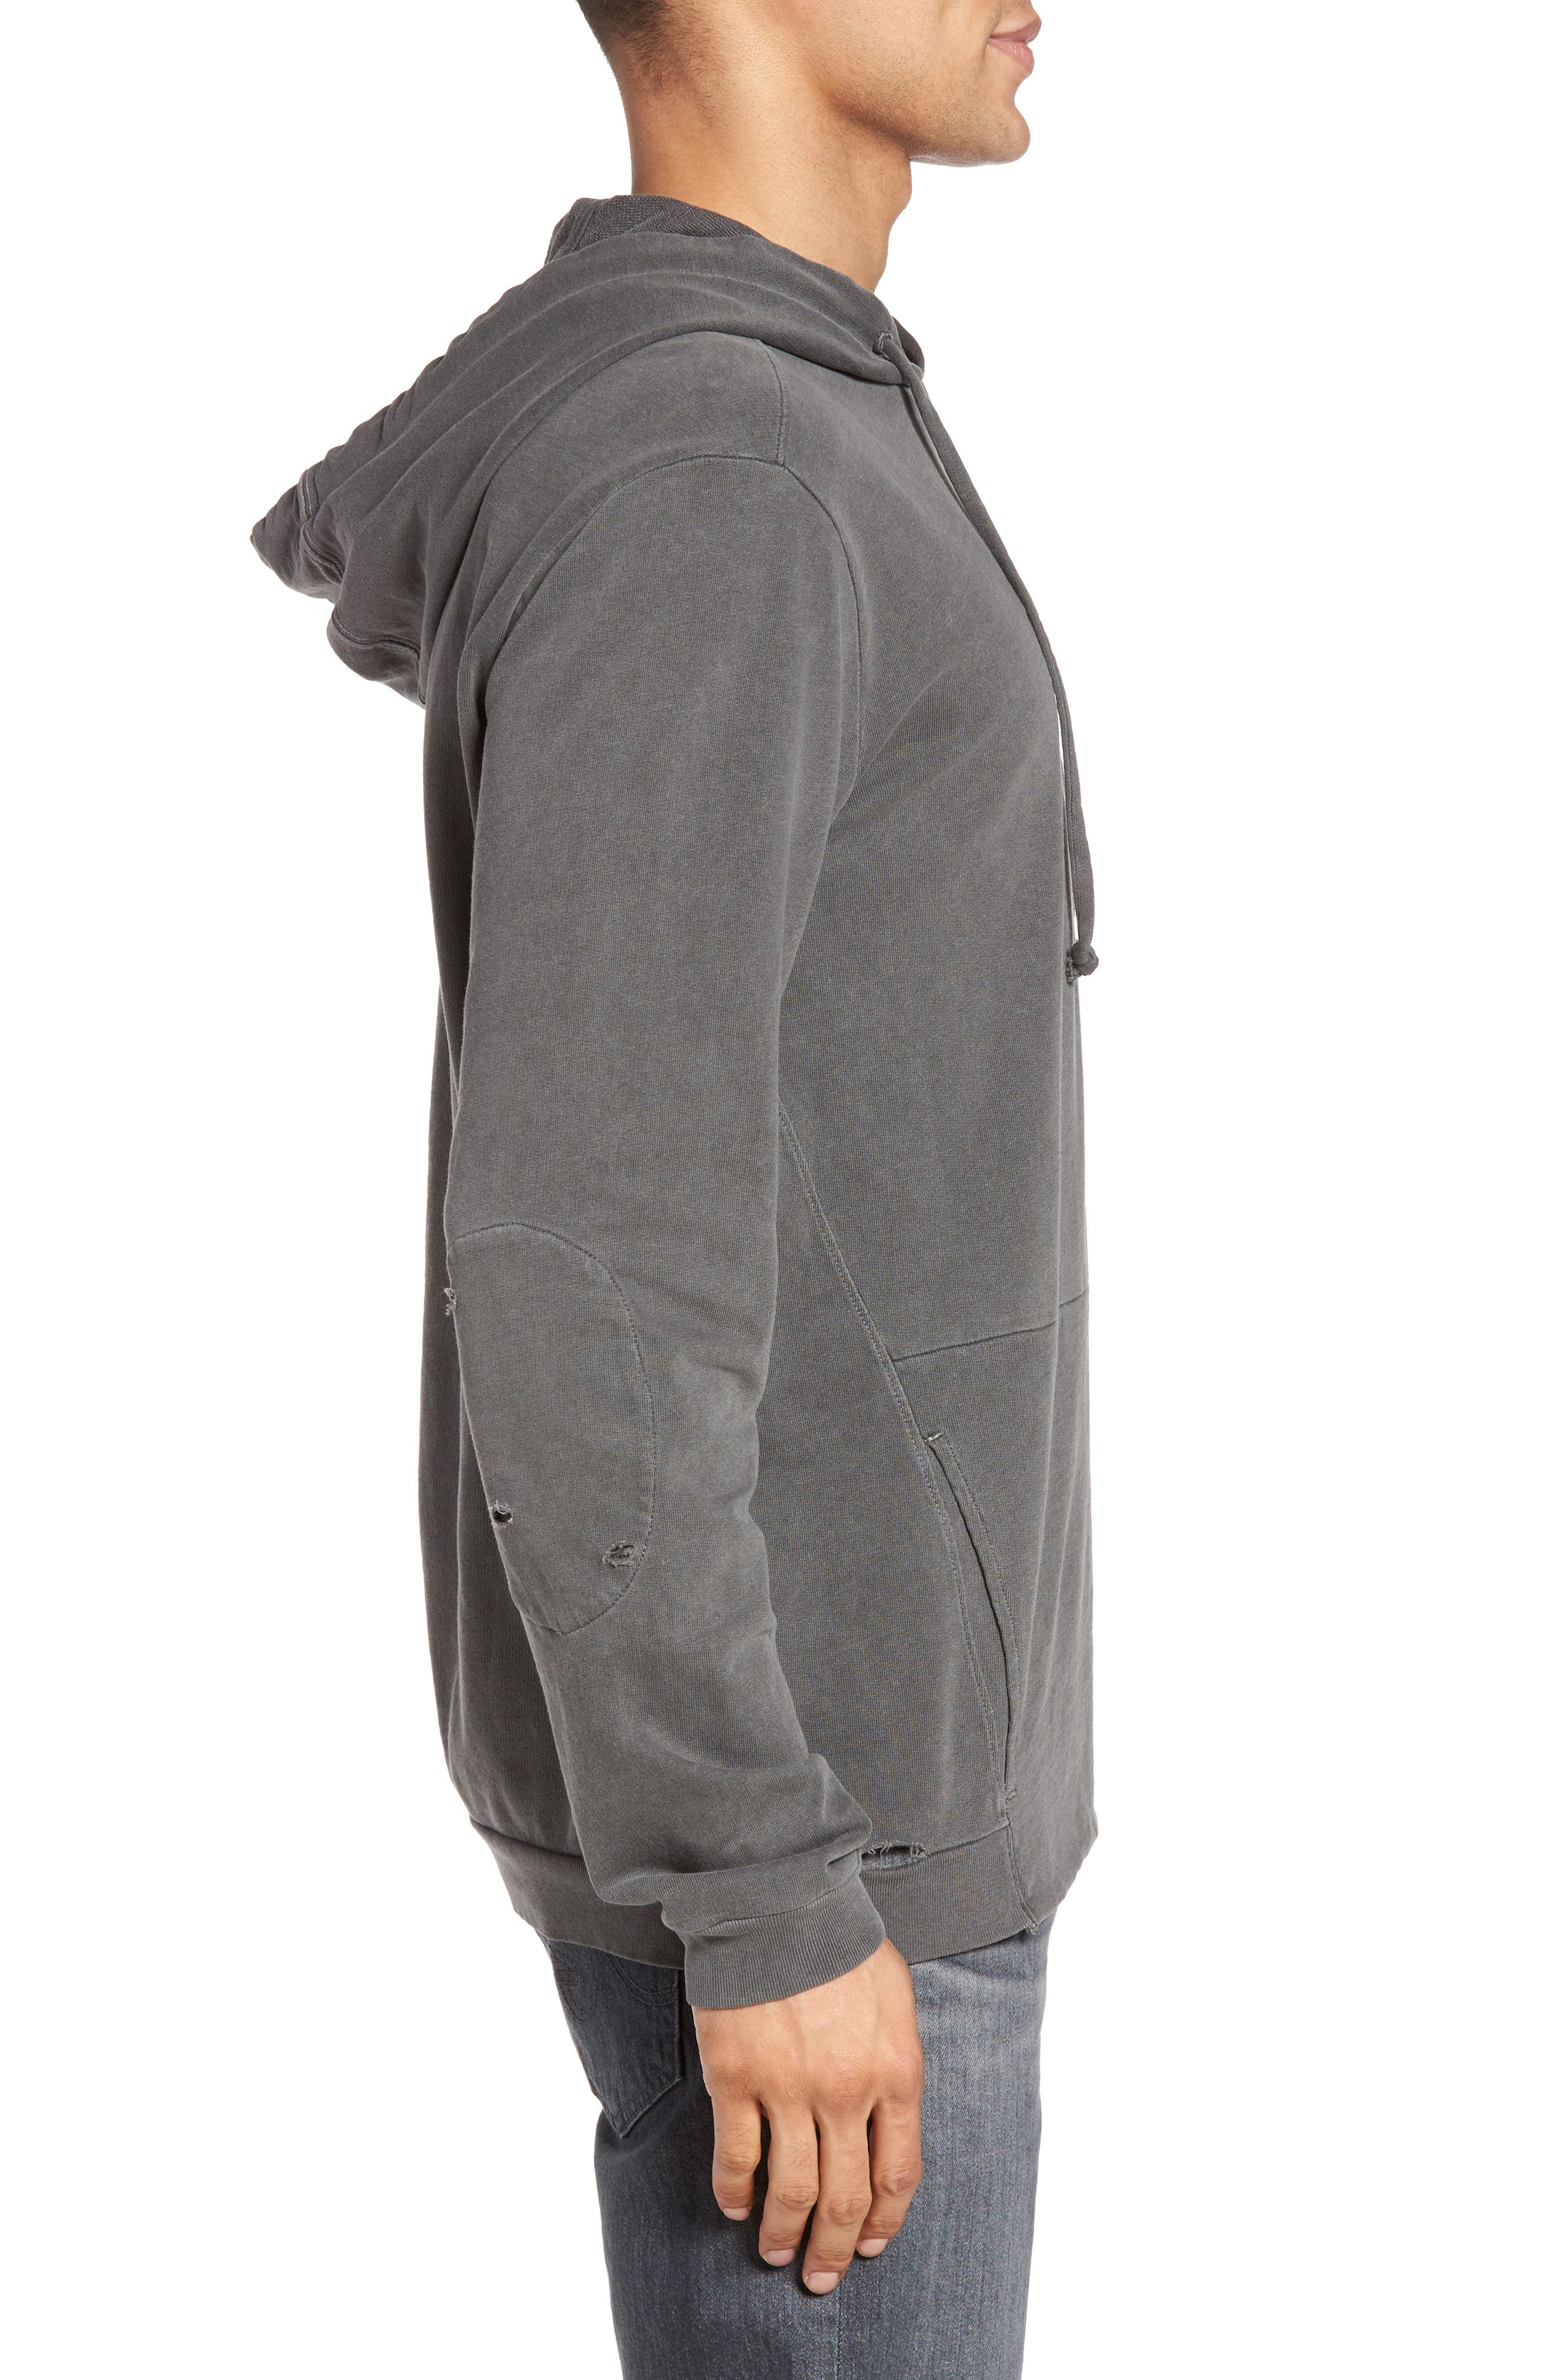 Eloi Pullover Hoodie,                             Alternate thumbnail 3, color,                             022